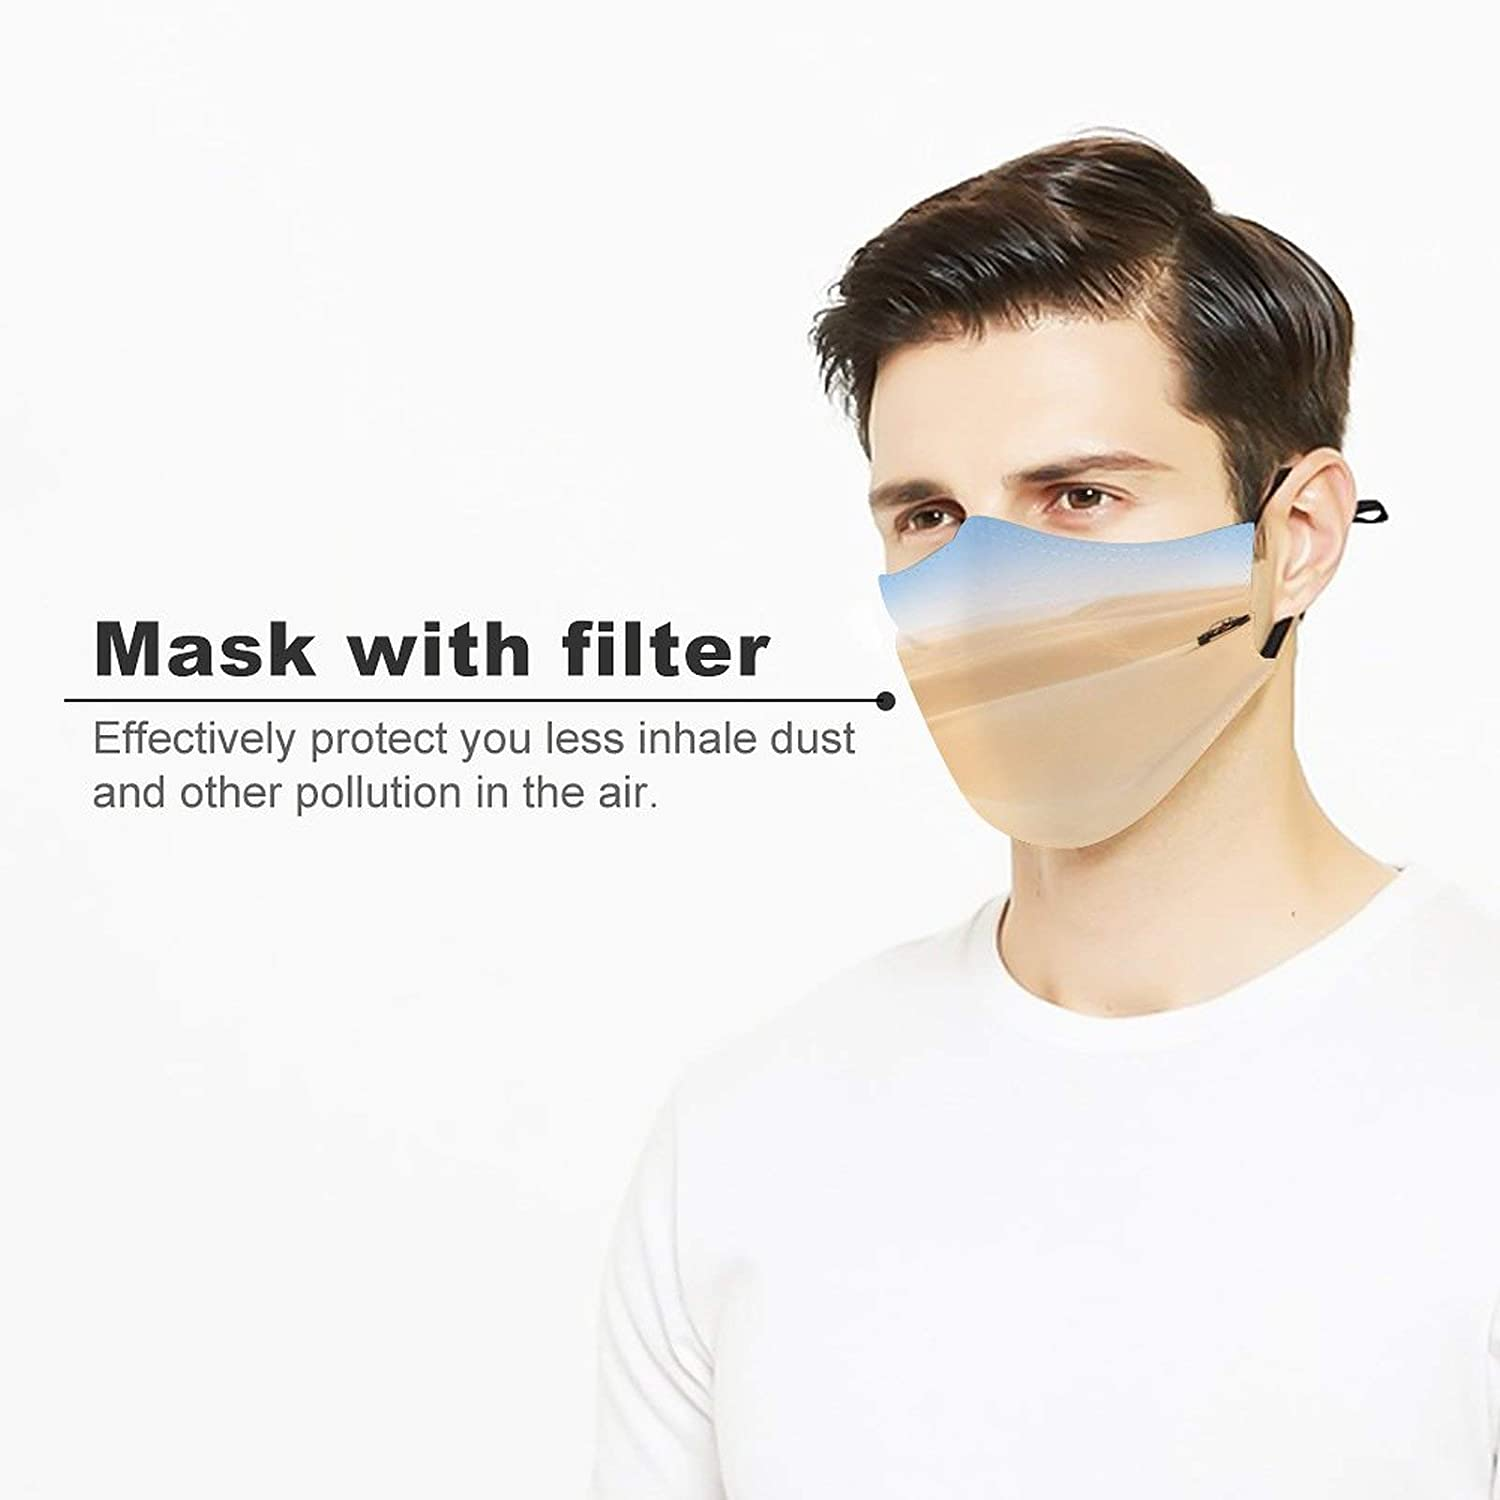 yanfind Mask with Filter Element Desert Eastern Arabic Doha Wealth Driving Beach Dune Fun Tradition Capital Dust Washable Reusable Filter and Reusable Mouth Warm Windproof Cotton Face